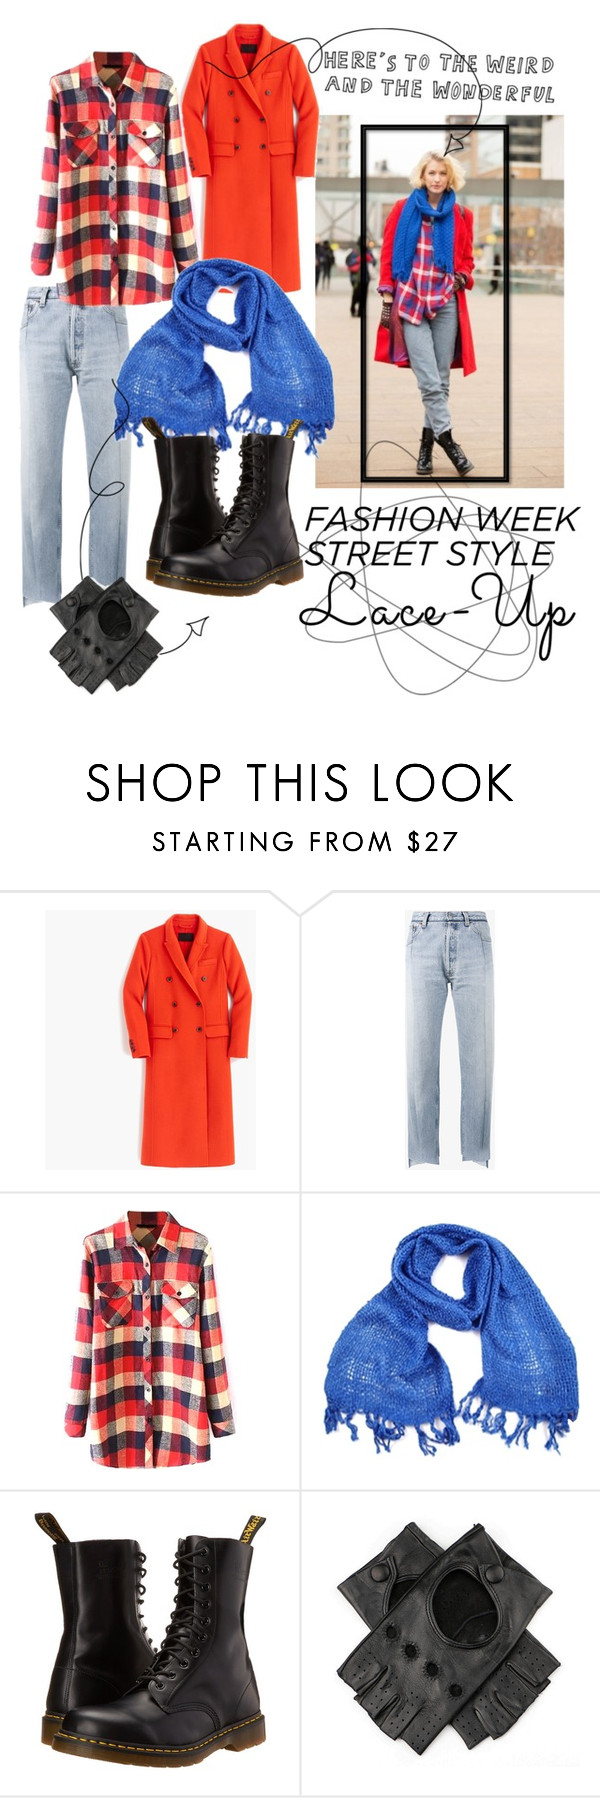 """Lace up"" by alliweb ❤ liked on Polyvore featuring J.Crew, Vetements, WithChic, Dr. Martens and Black"